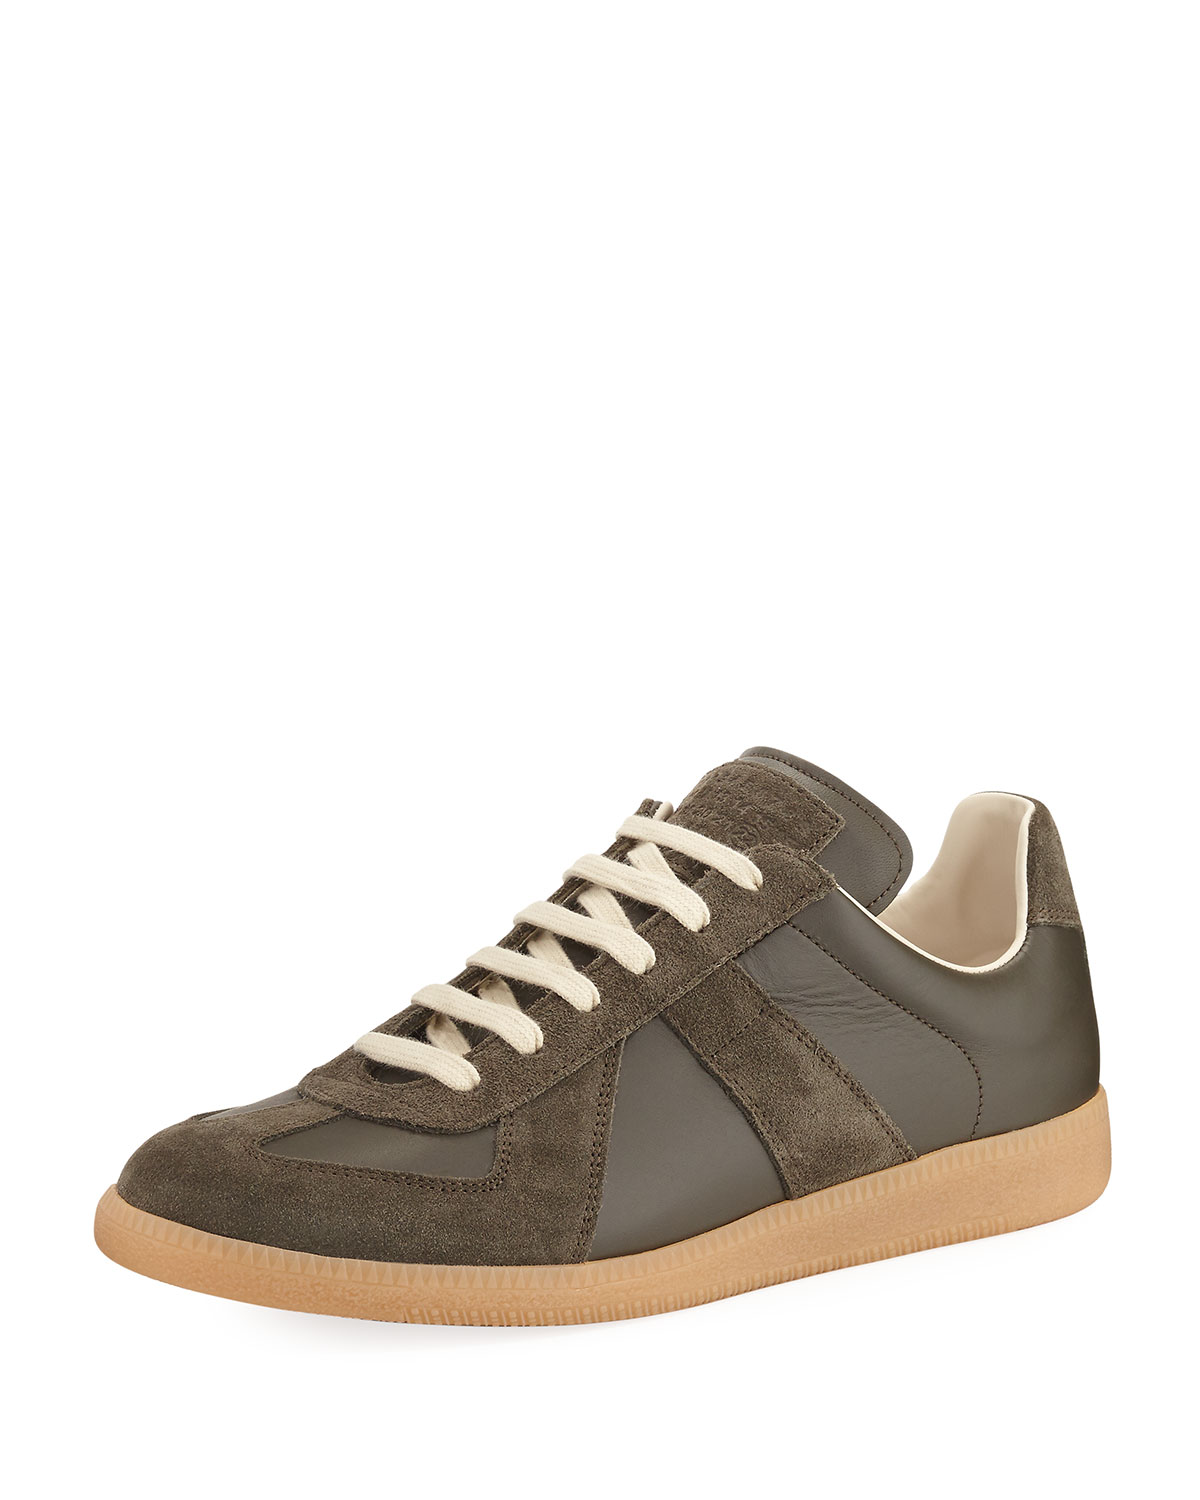 Men's Replica Leather & Suede Low Top Sneakers, Green by Maison Margiela